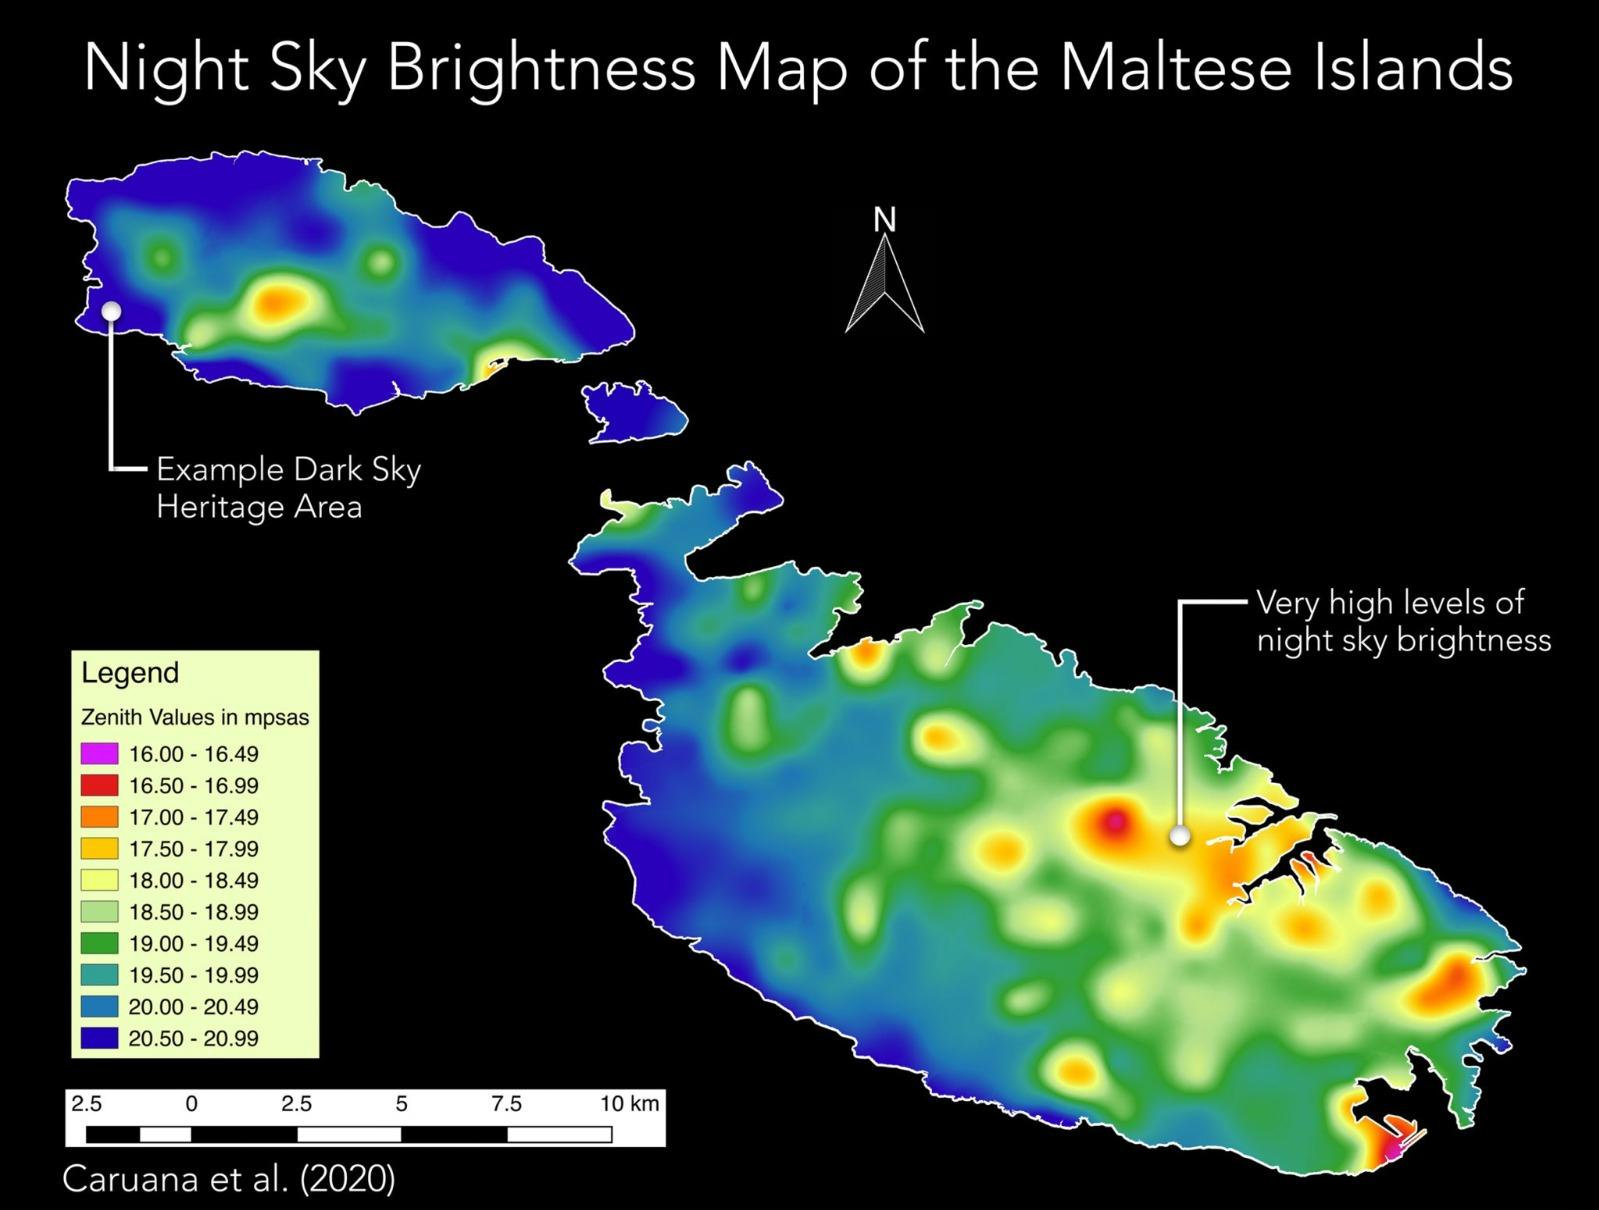 A map of the night sky brightness of the Maltese Islands from a study published in 2020. The darkest sites are shown in blue.